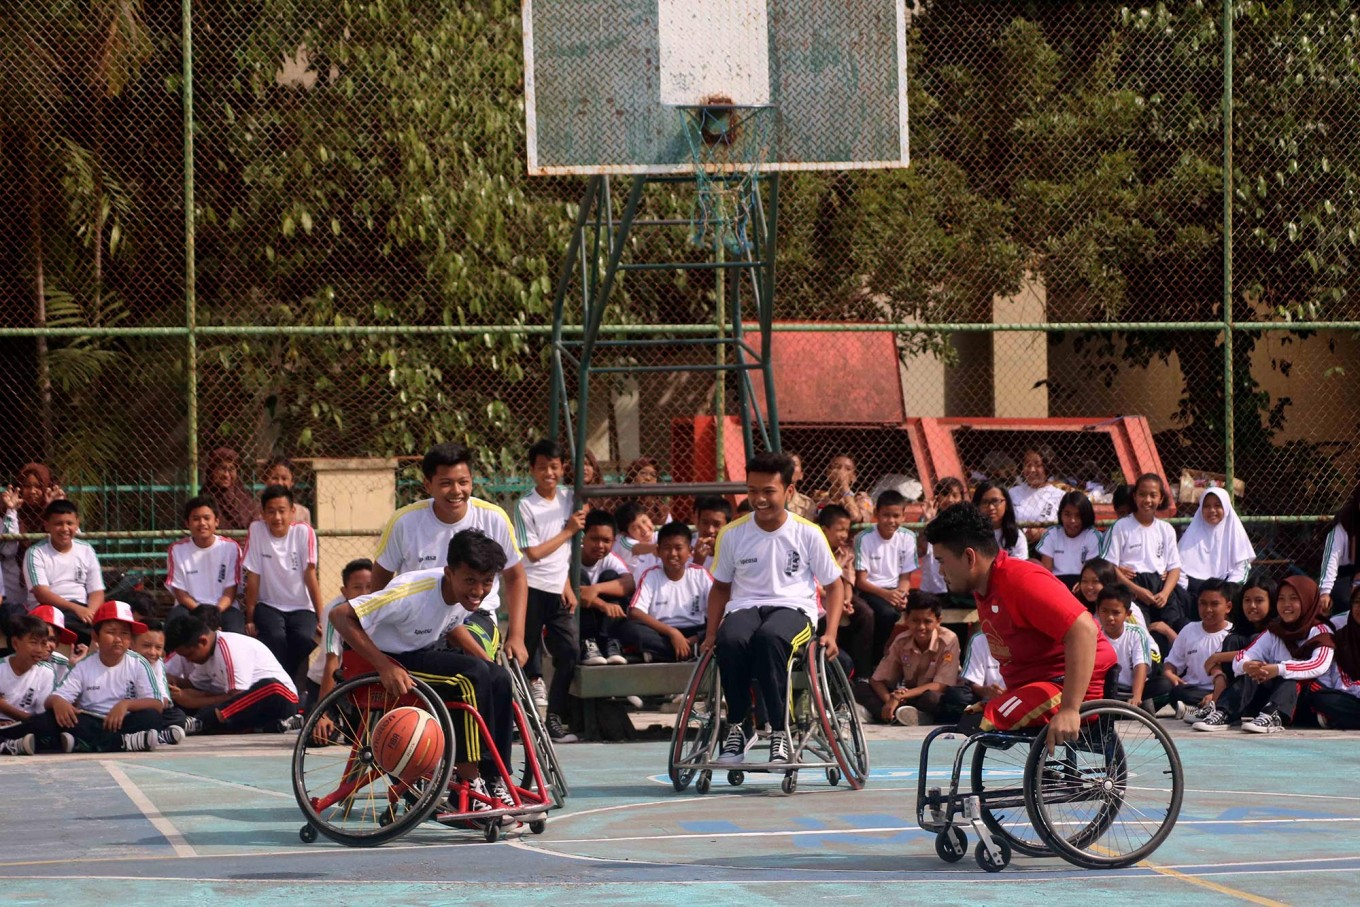 Athletes have a fun session with high school students in Surakarta, Central Java. JP/Maksum Nur Fauzan